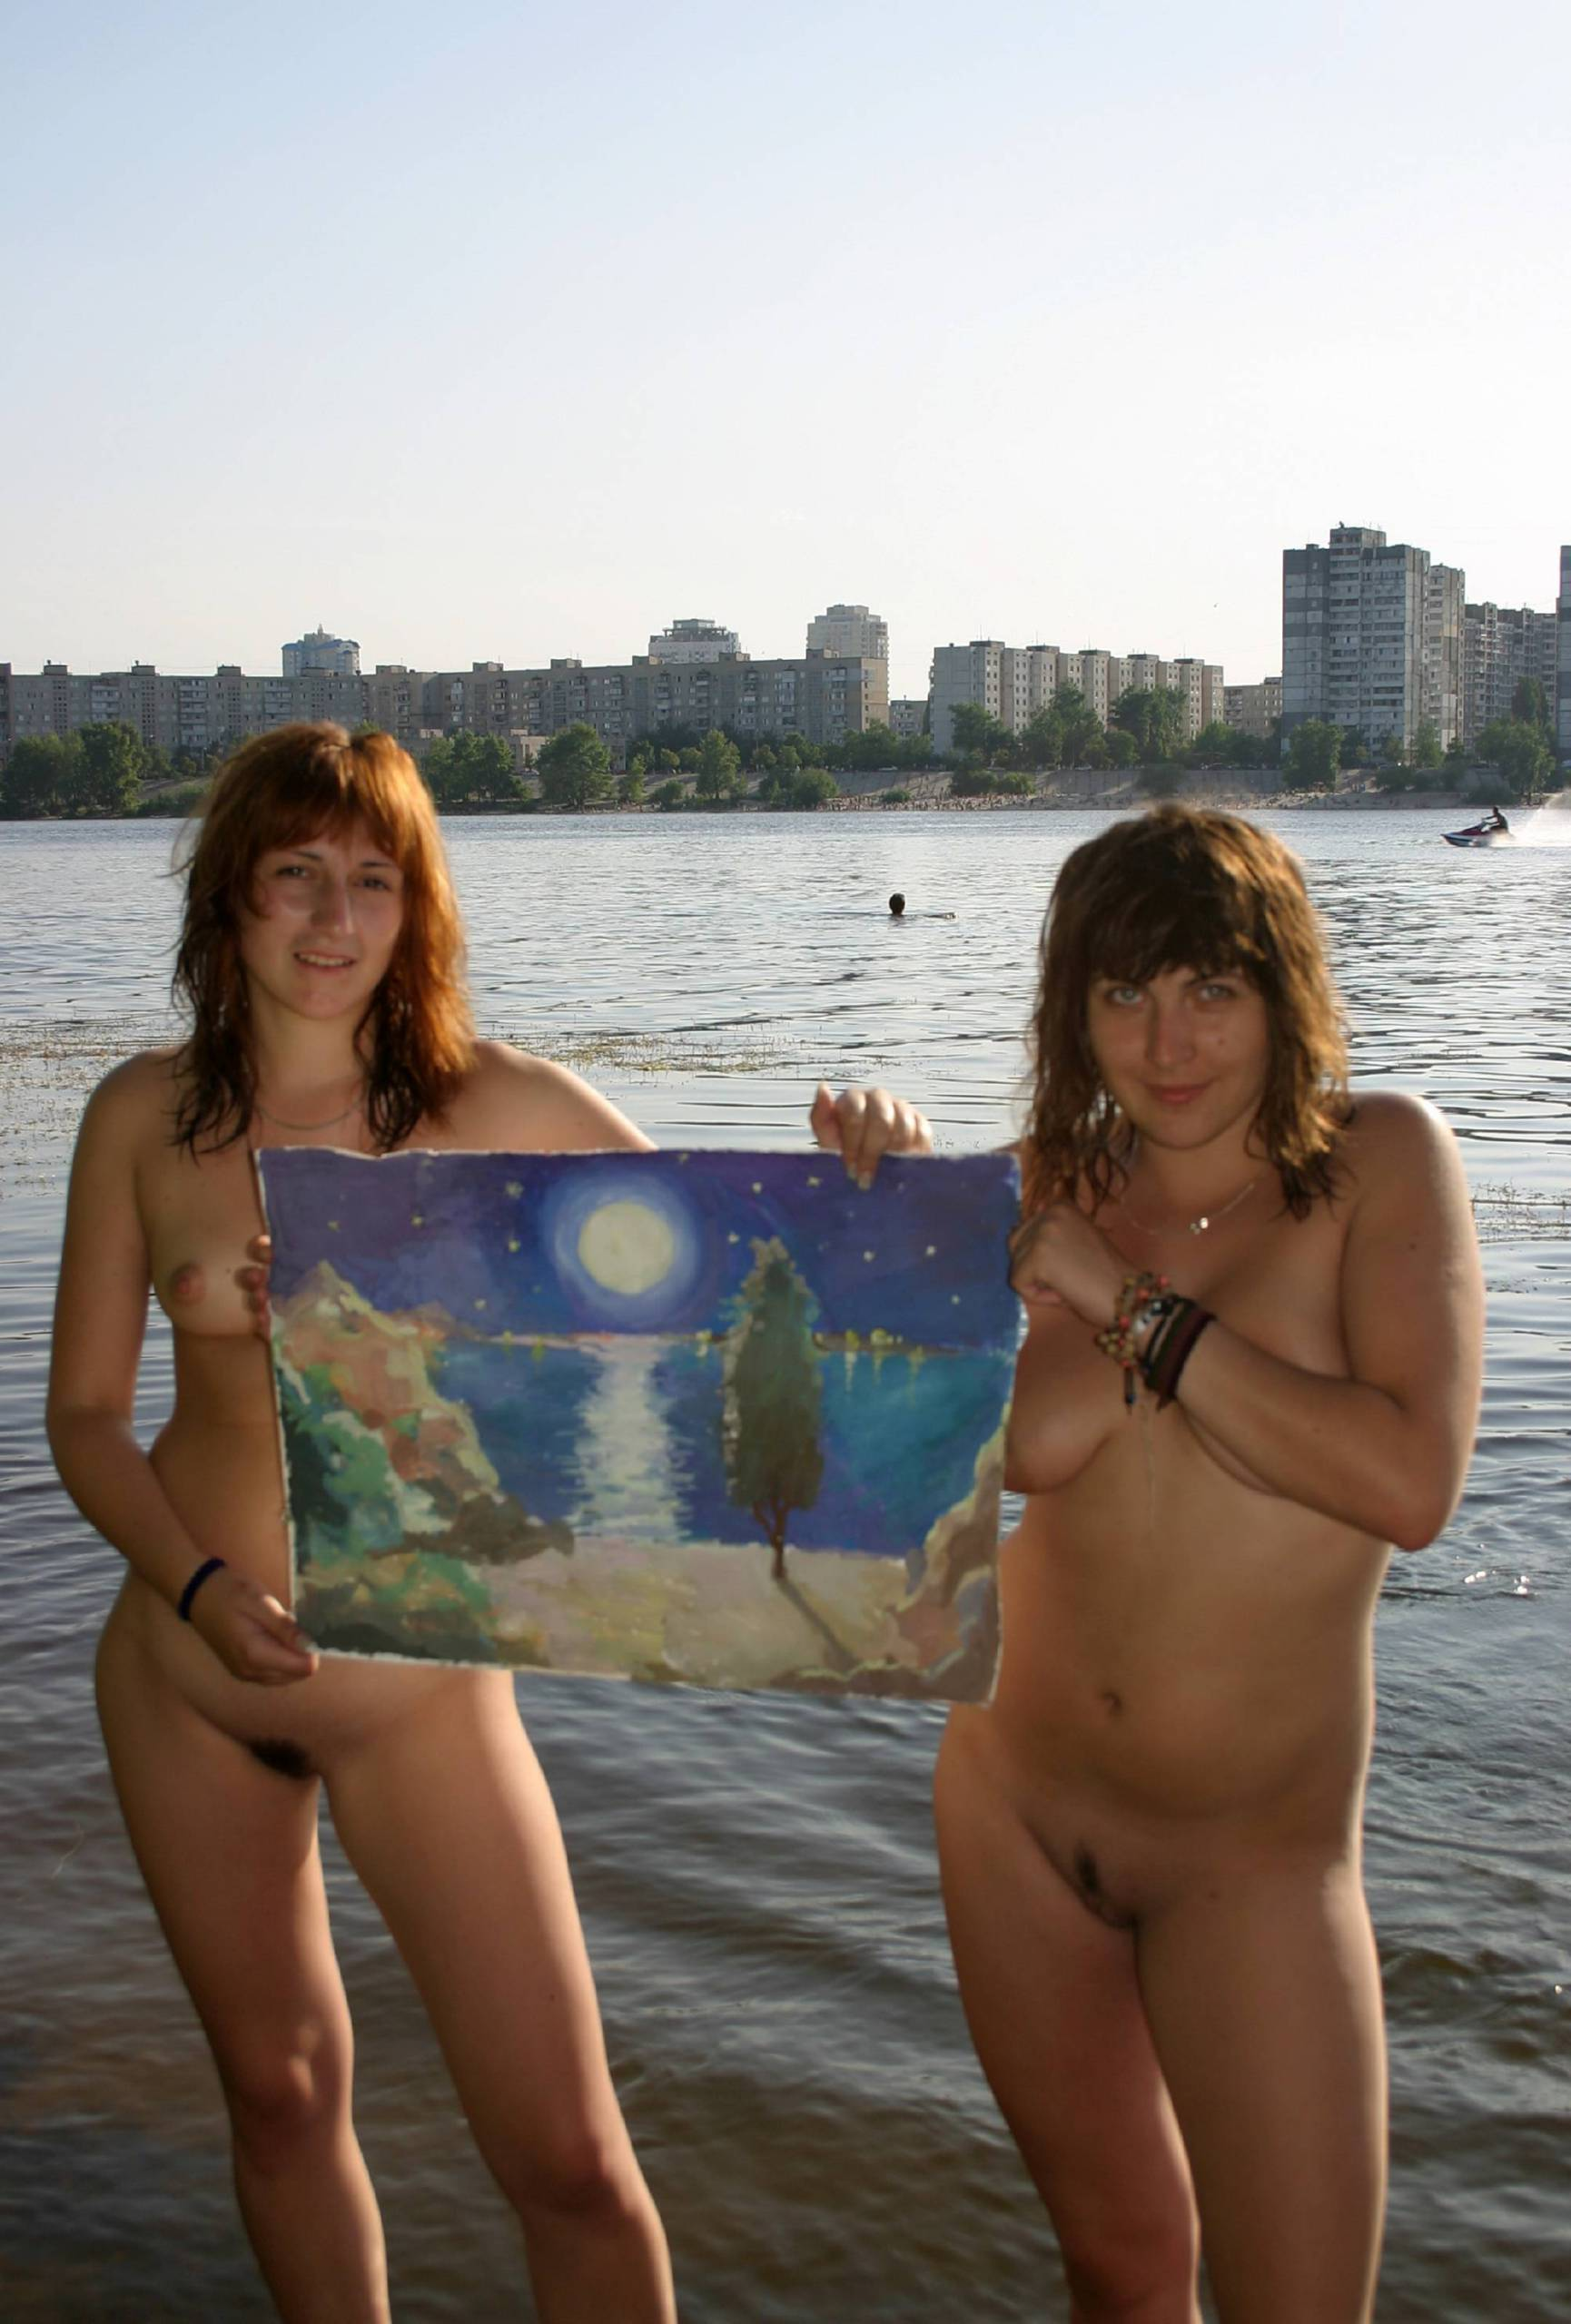 Outdoor Canvas Drawings - 2